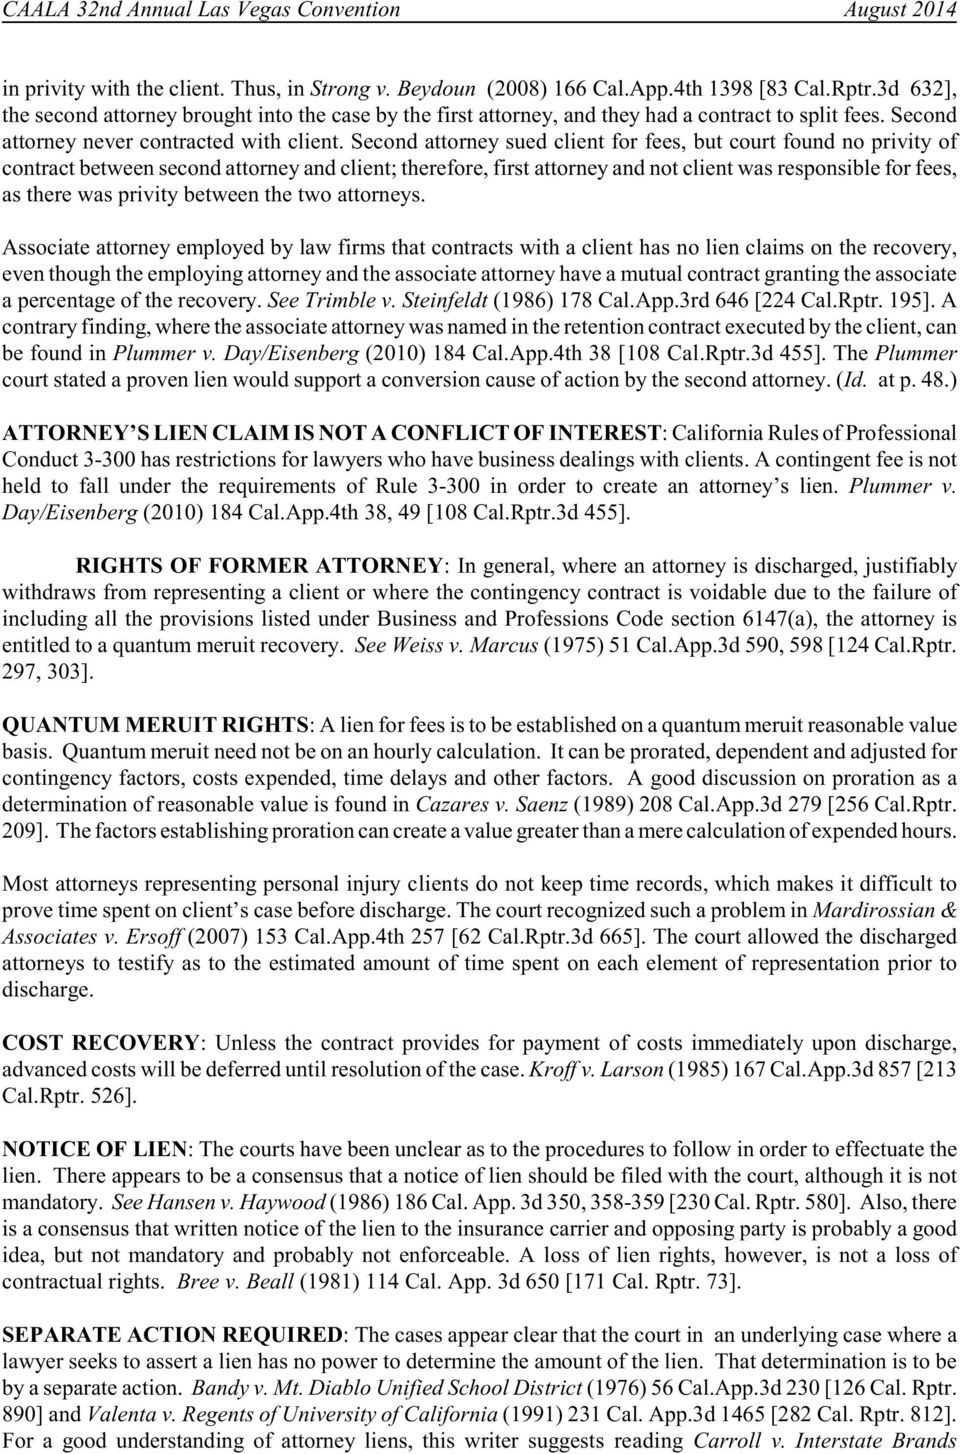 california rules of professional conduct conflict of interest